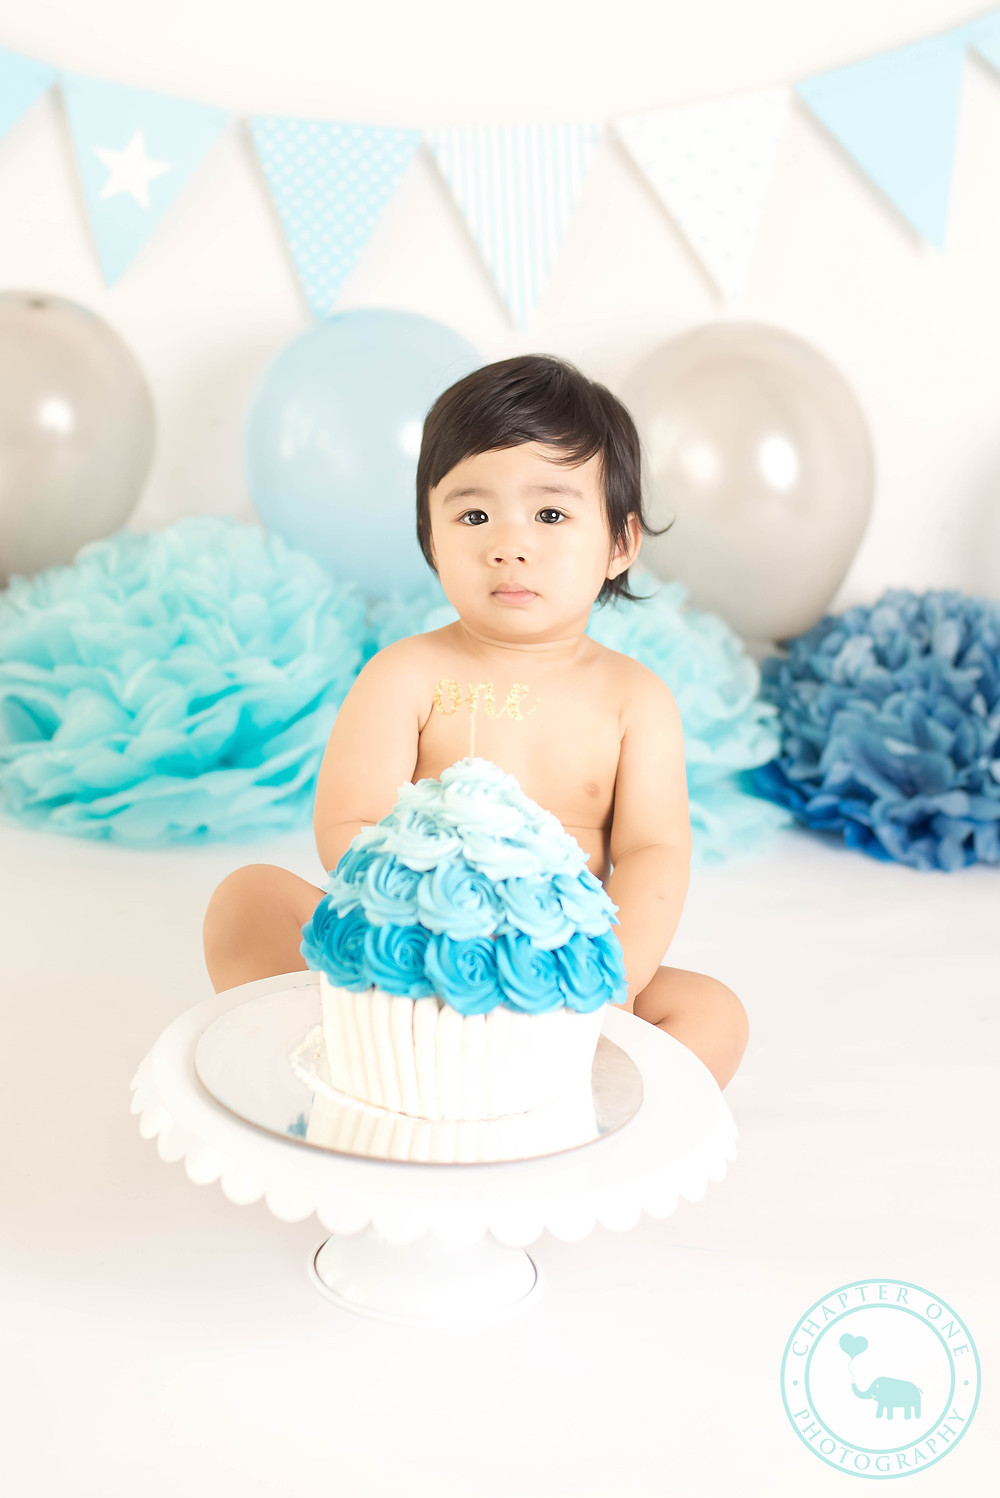 North Sydney Blue Boy Cake Smash Photography